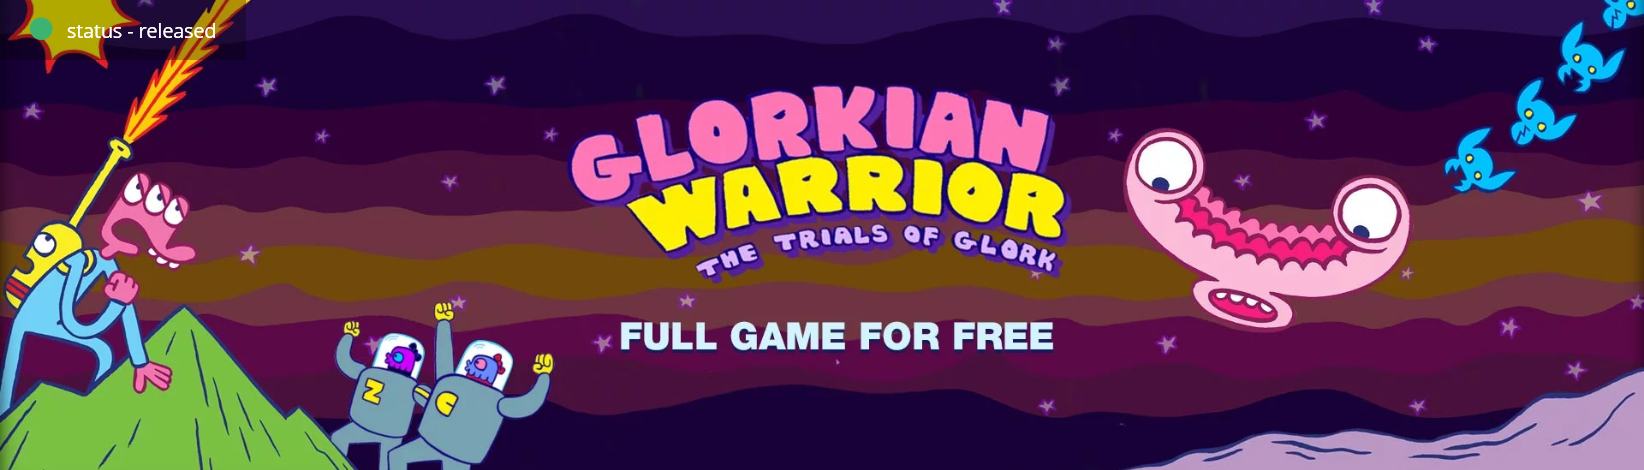 Screenshot_2019-06-01 Glorkian Warrior The Trials Of Glork Indiegala Developers.png